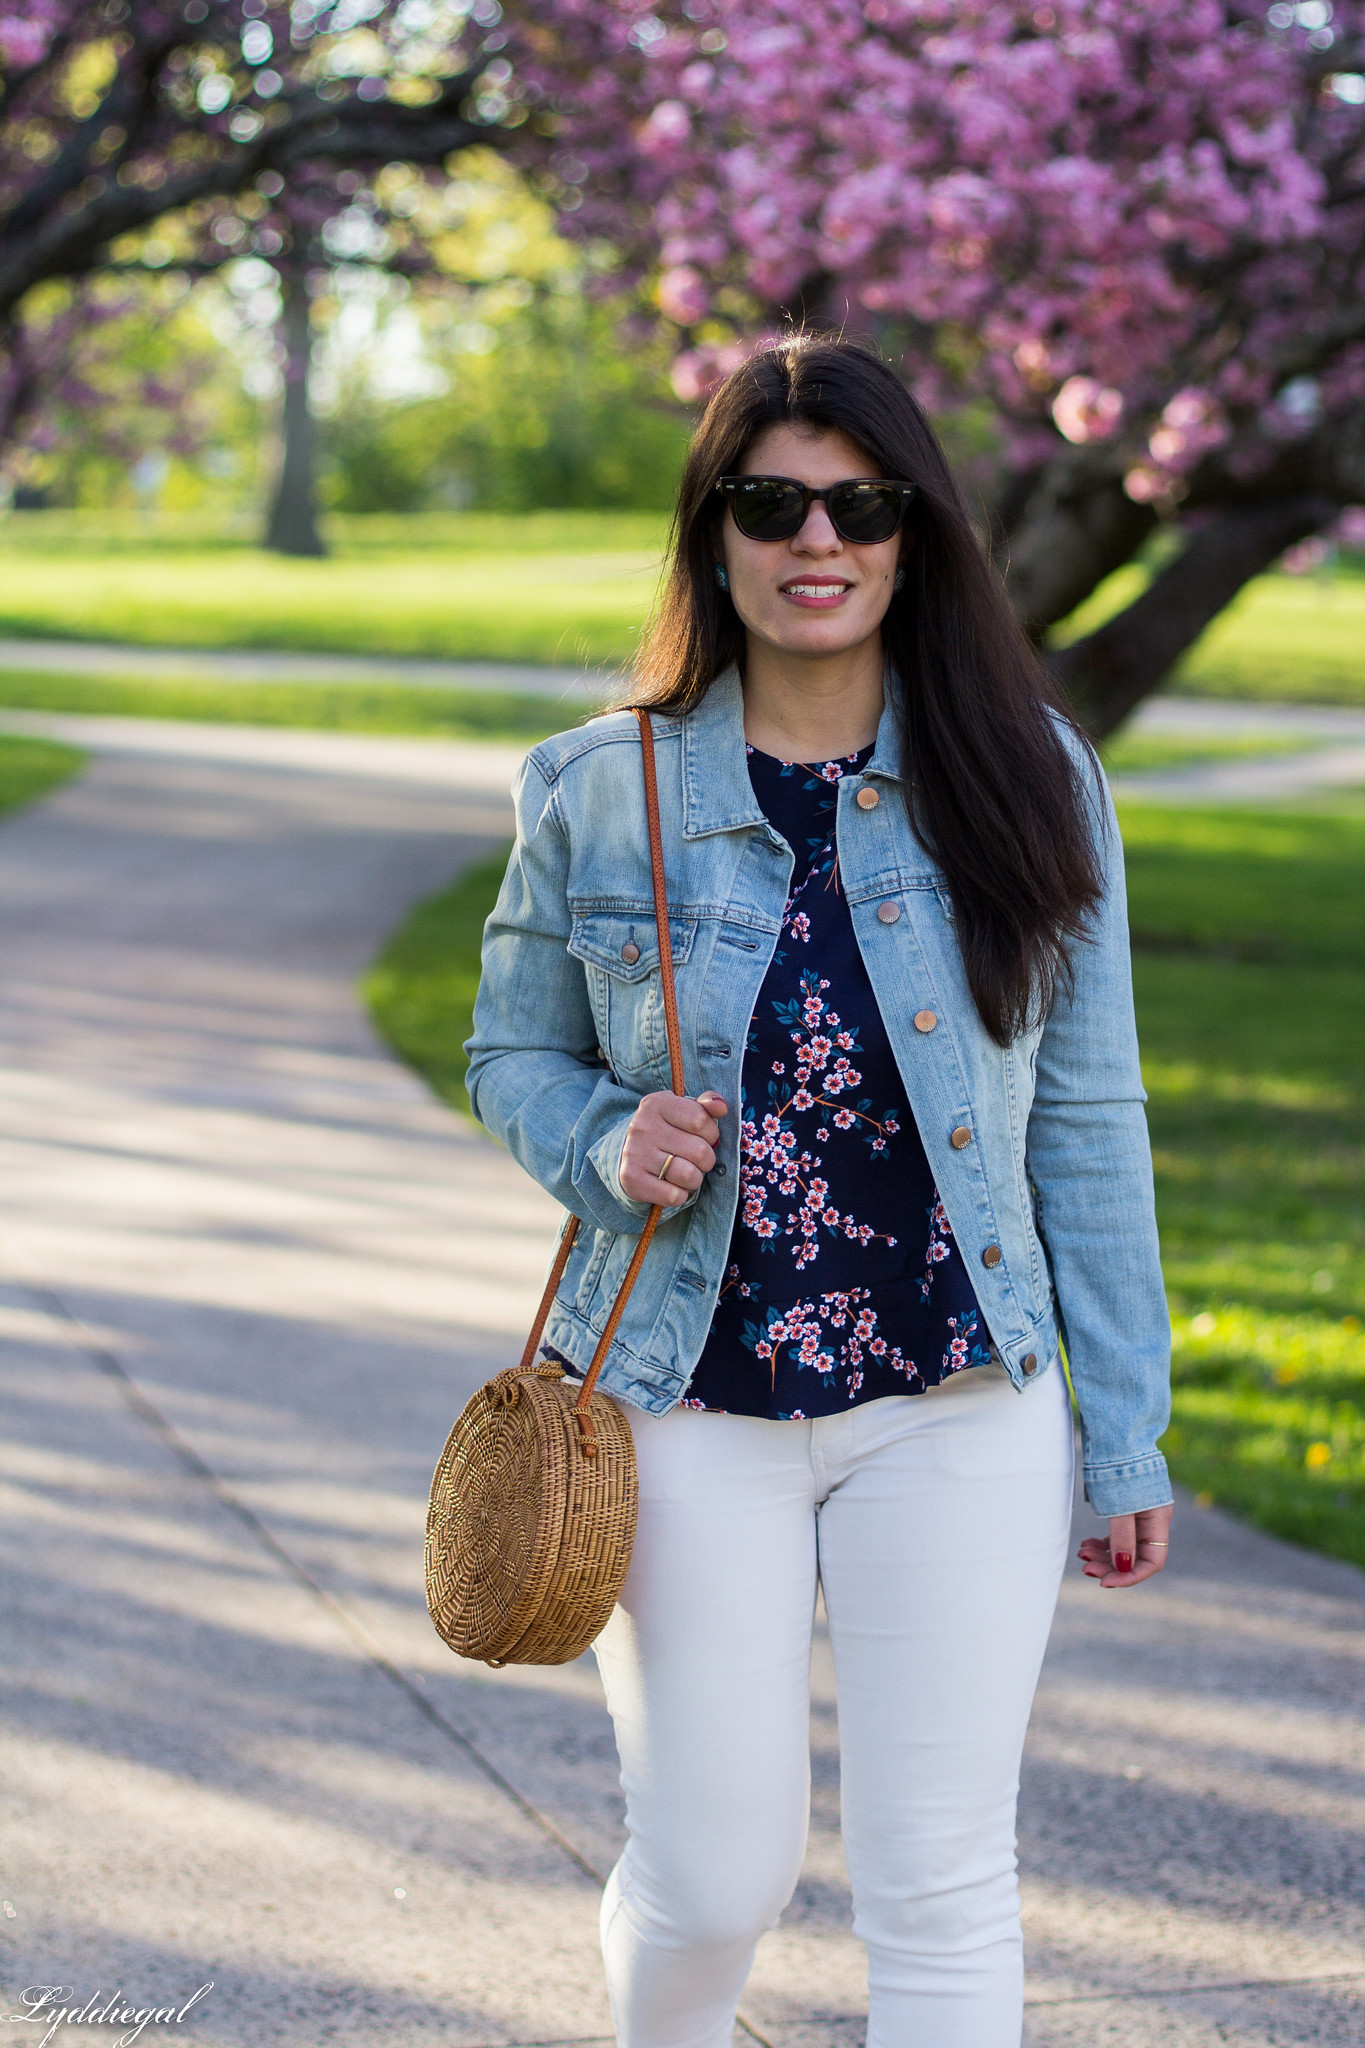 denim jacket, cherry blossom print blouse, white jeans, blue loafers-9.jpg